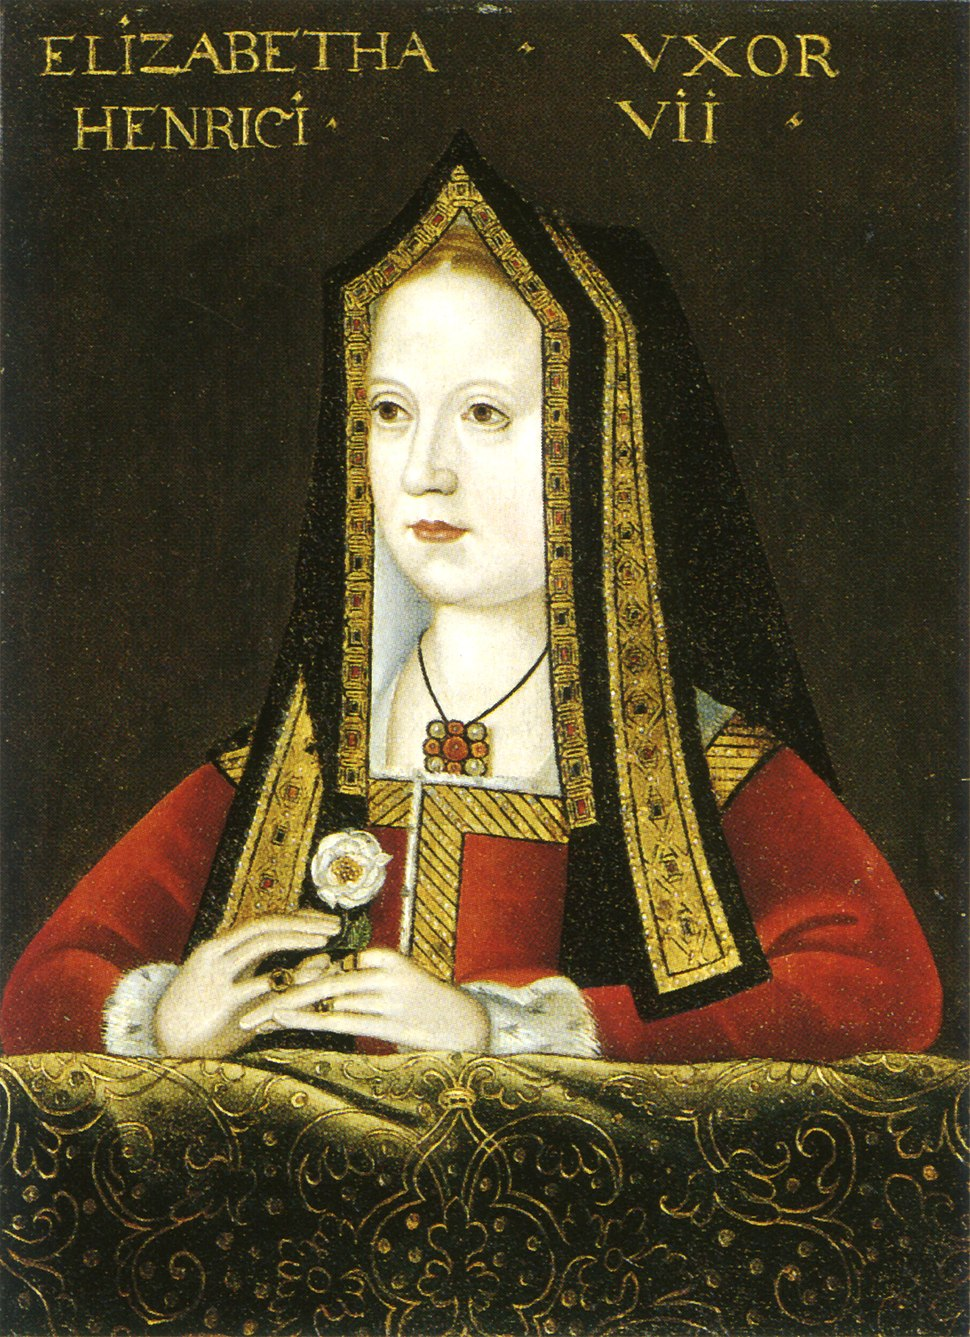 Elizabeth of York from Kings and Queens of England